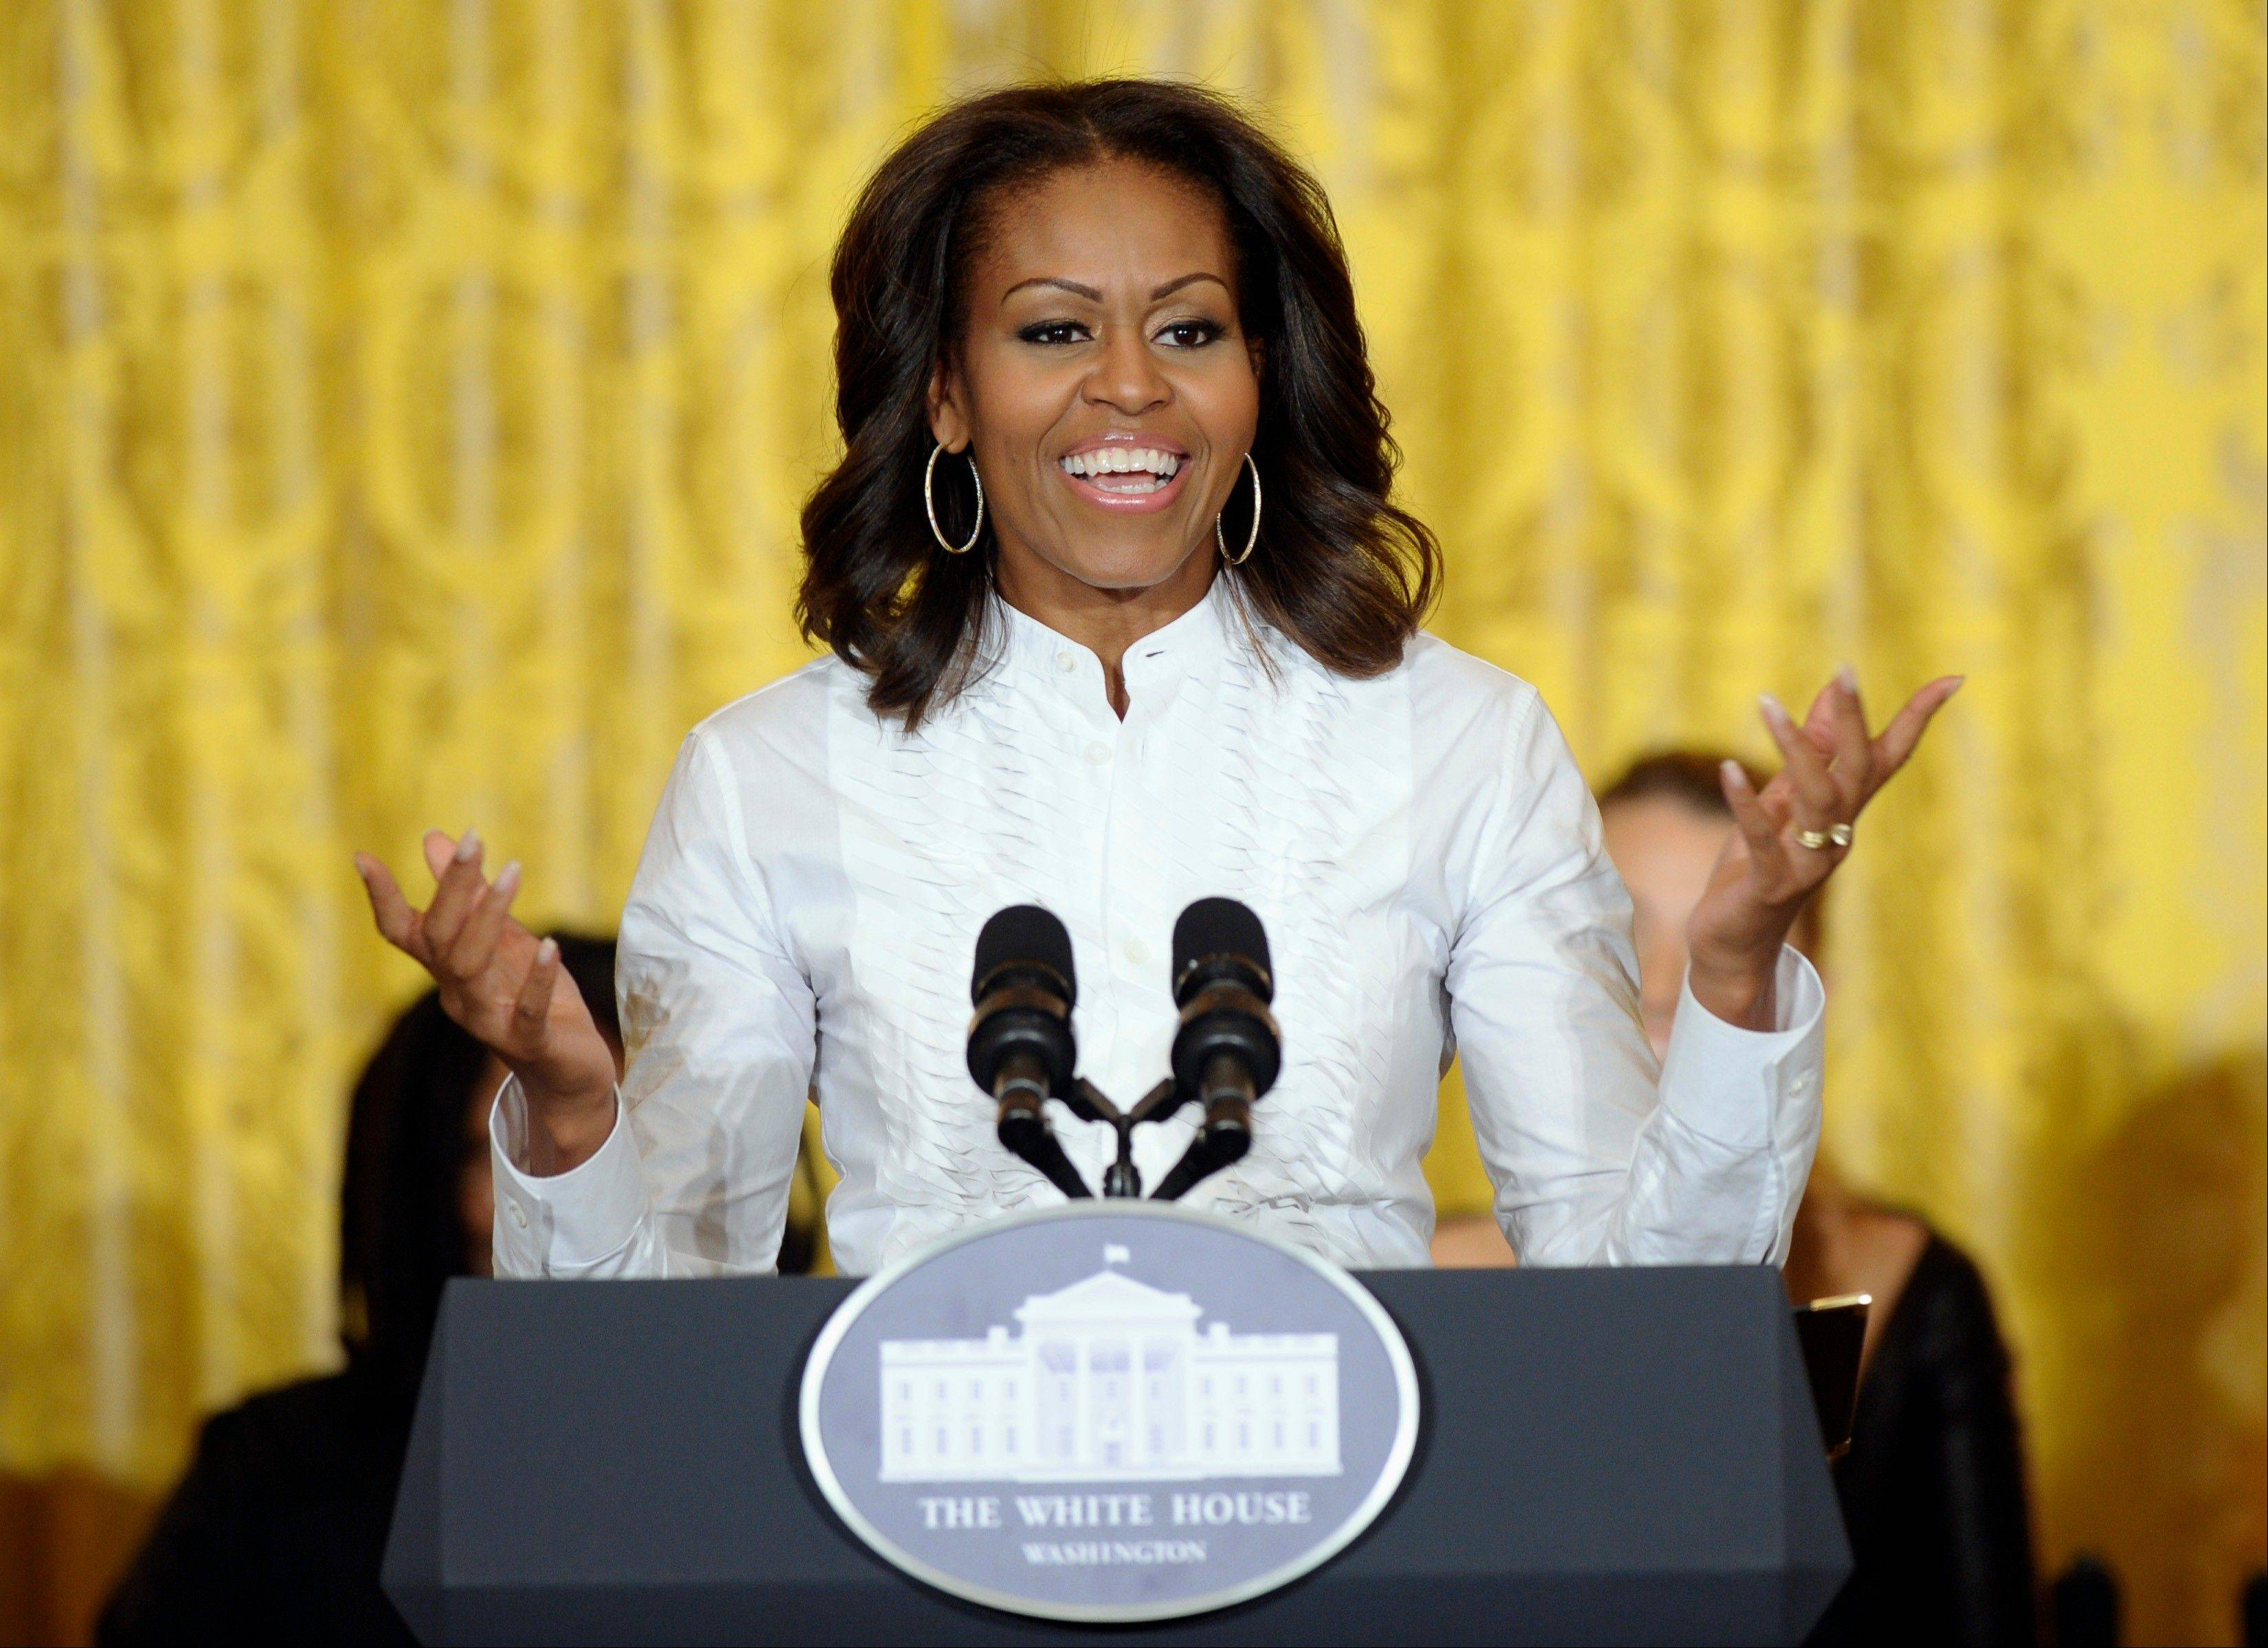 First lady Michelle Obama is joining President Barack Obama's efforts to get the United States on track to have the highest percentage of college graduates by 2020.